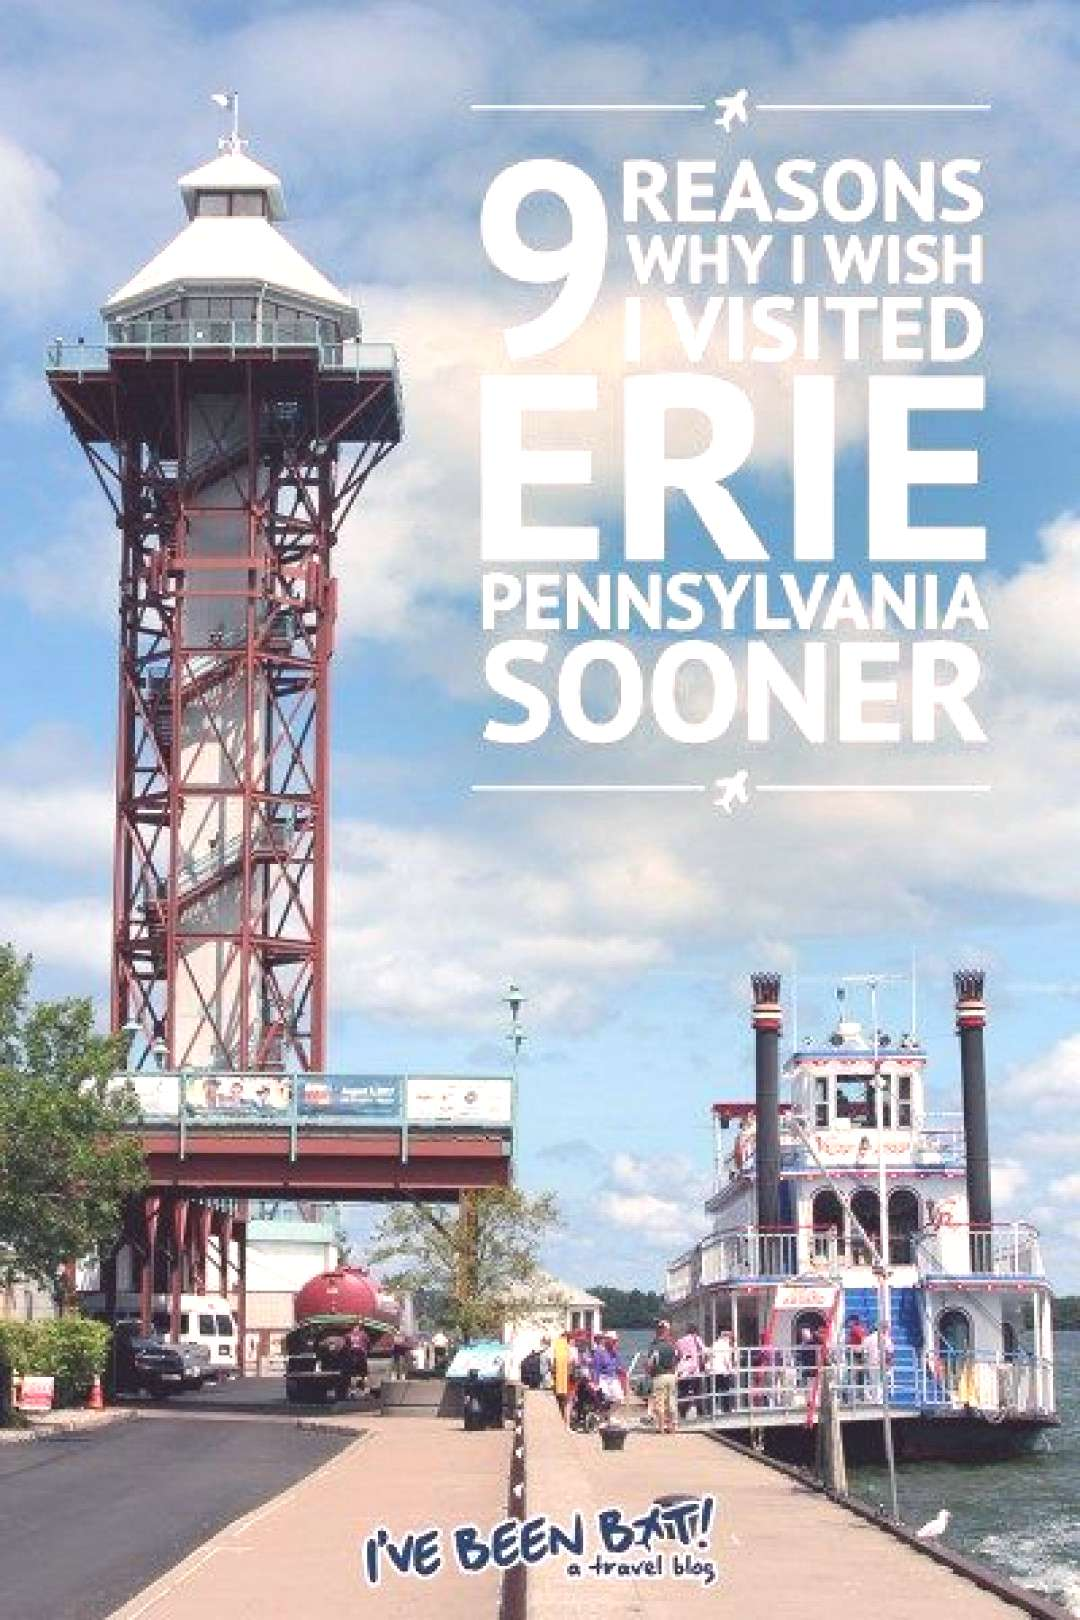 9 Reasons Why I Wish I Visited Erie Pennsylvania Sooner » I've Been Bit :: A Travel Blog -  I've